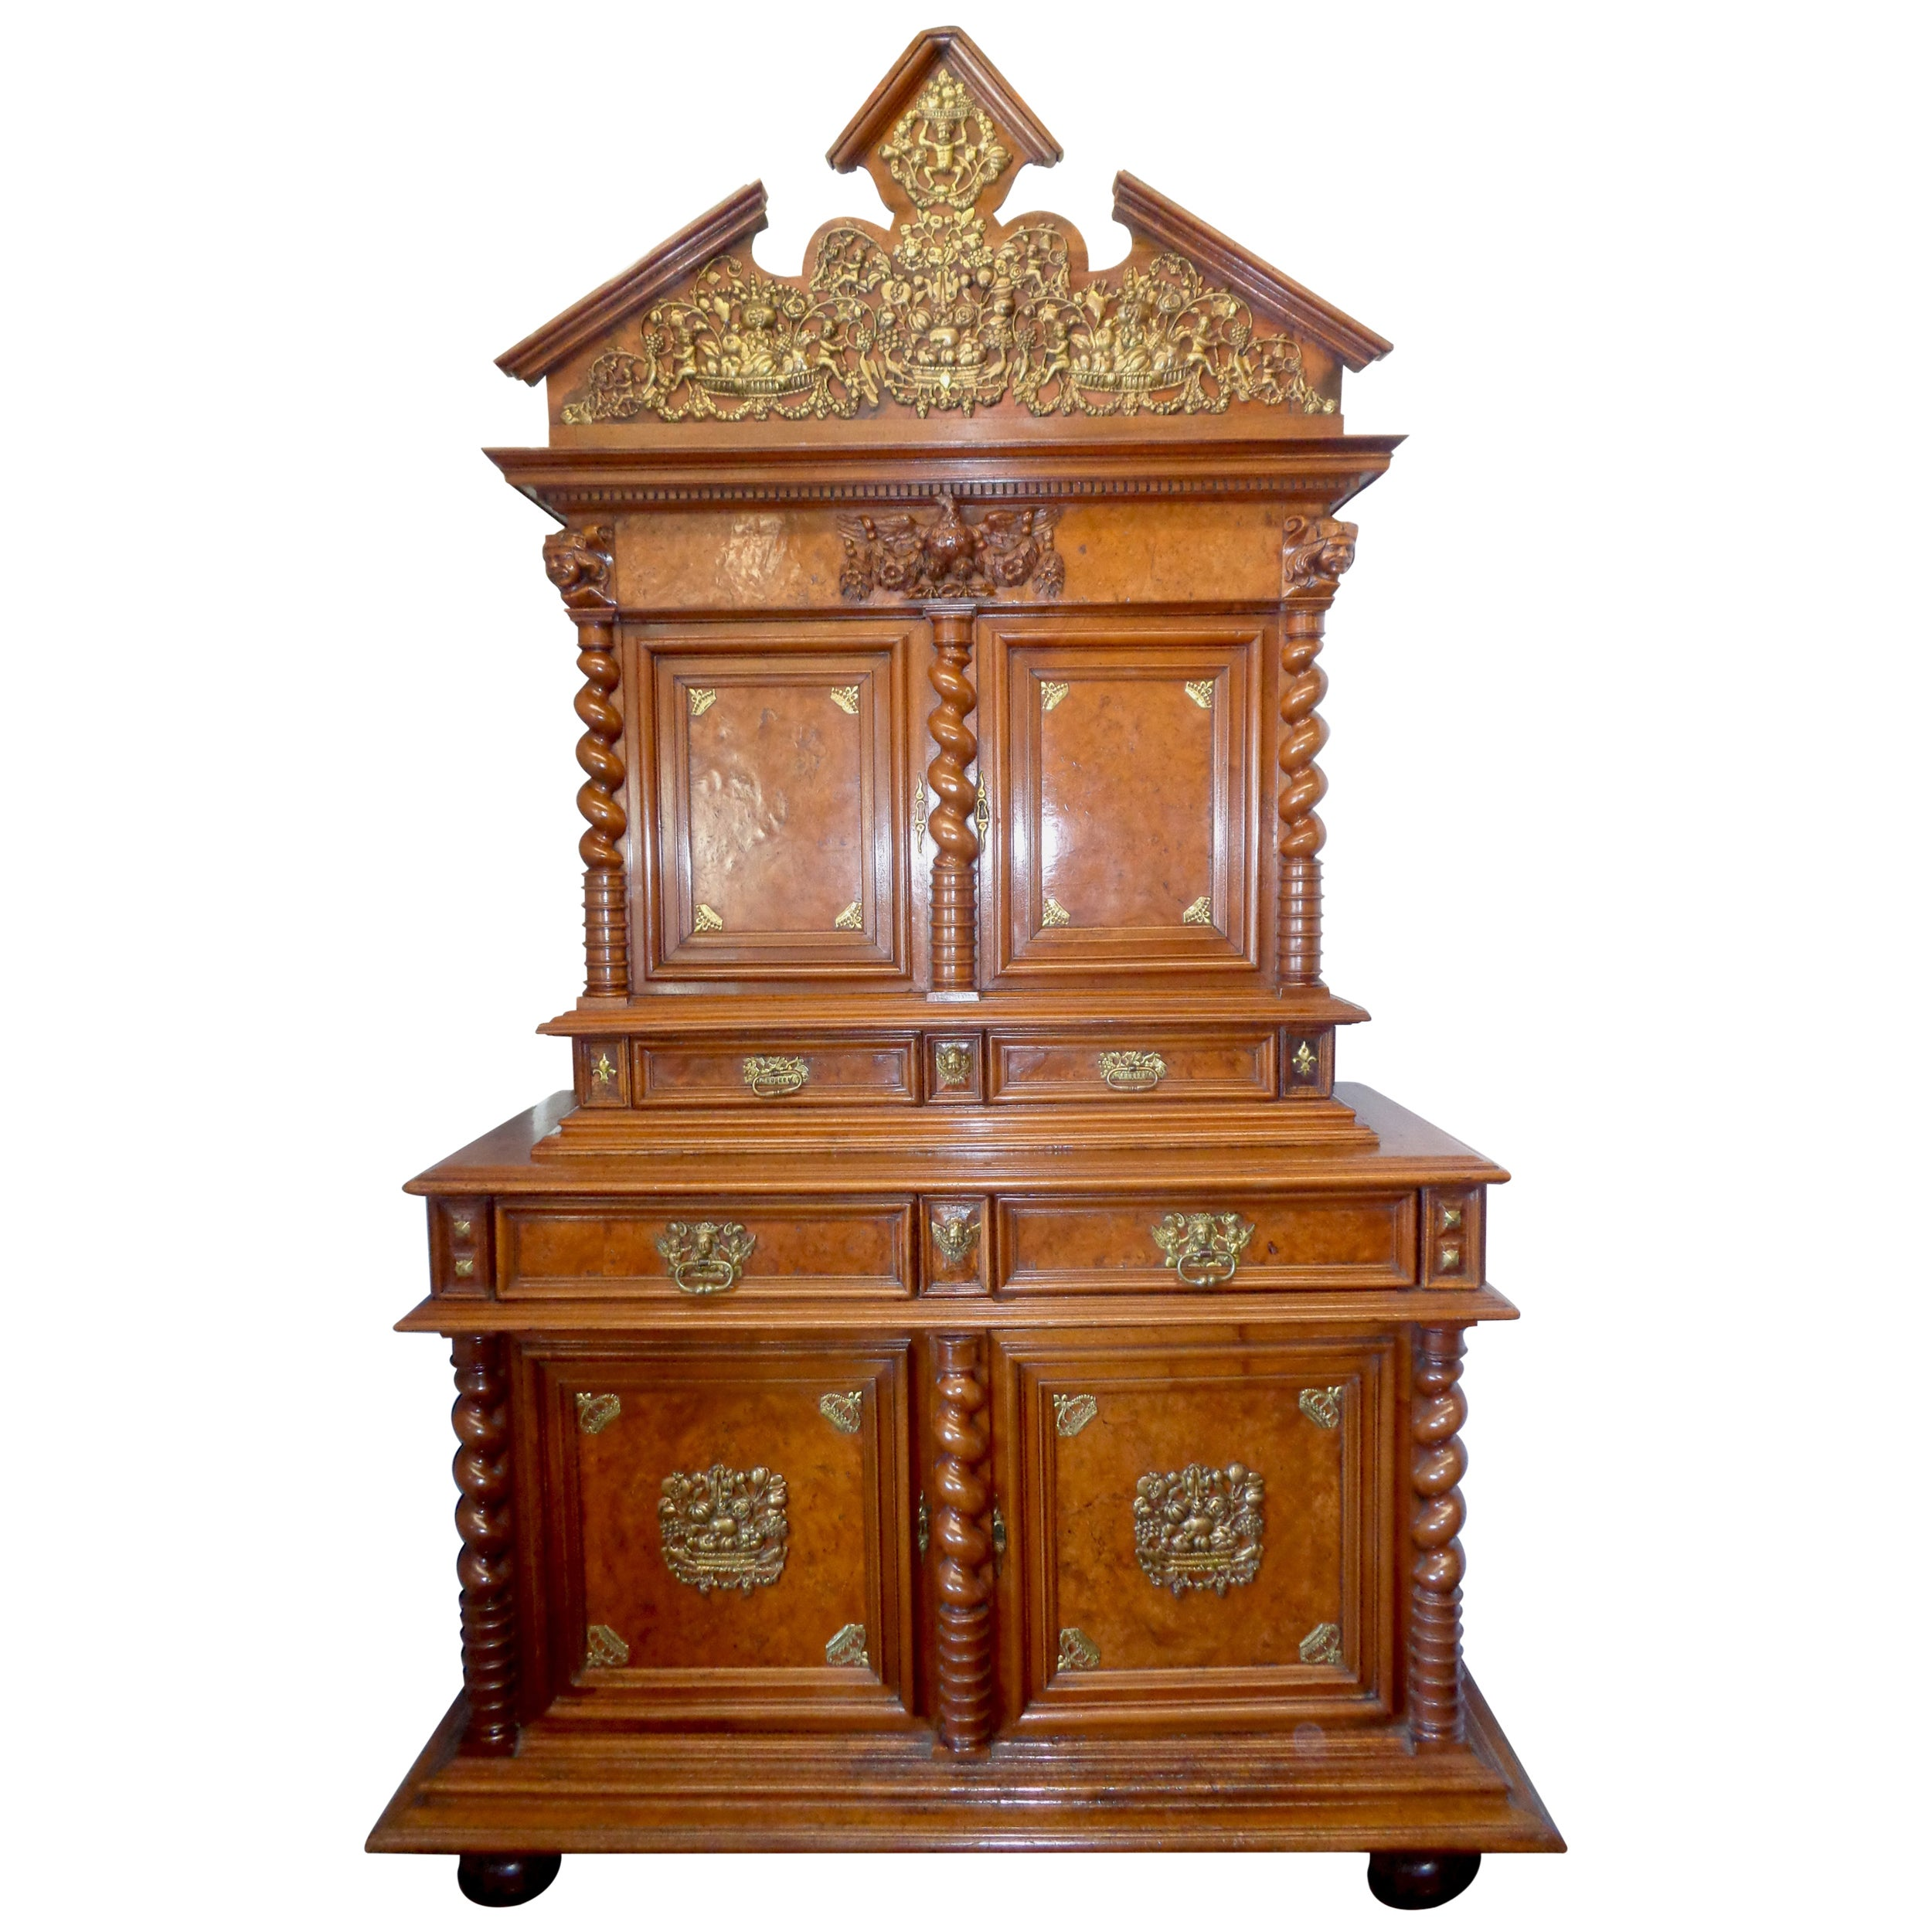 French Louis XIV Buffet Deux Corps in Walnut and Burled Elm, circa 1670